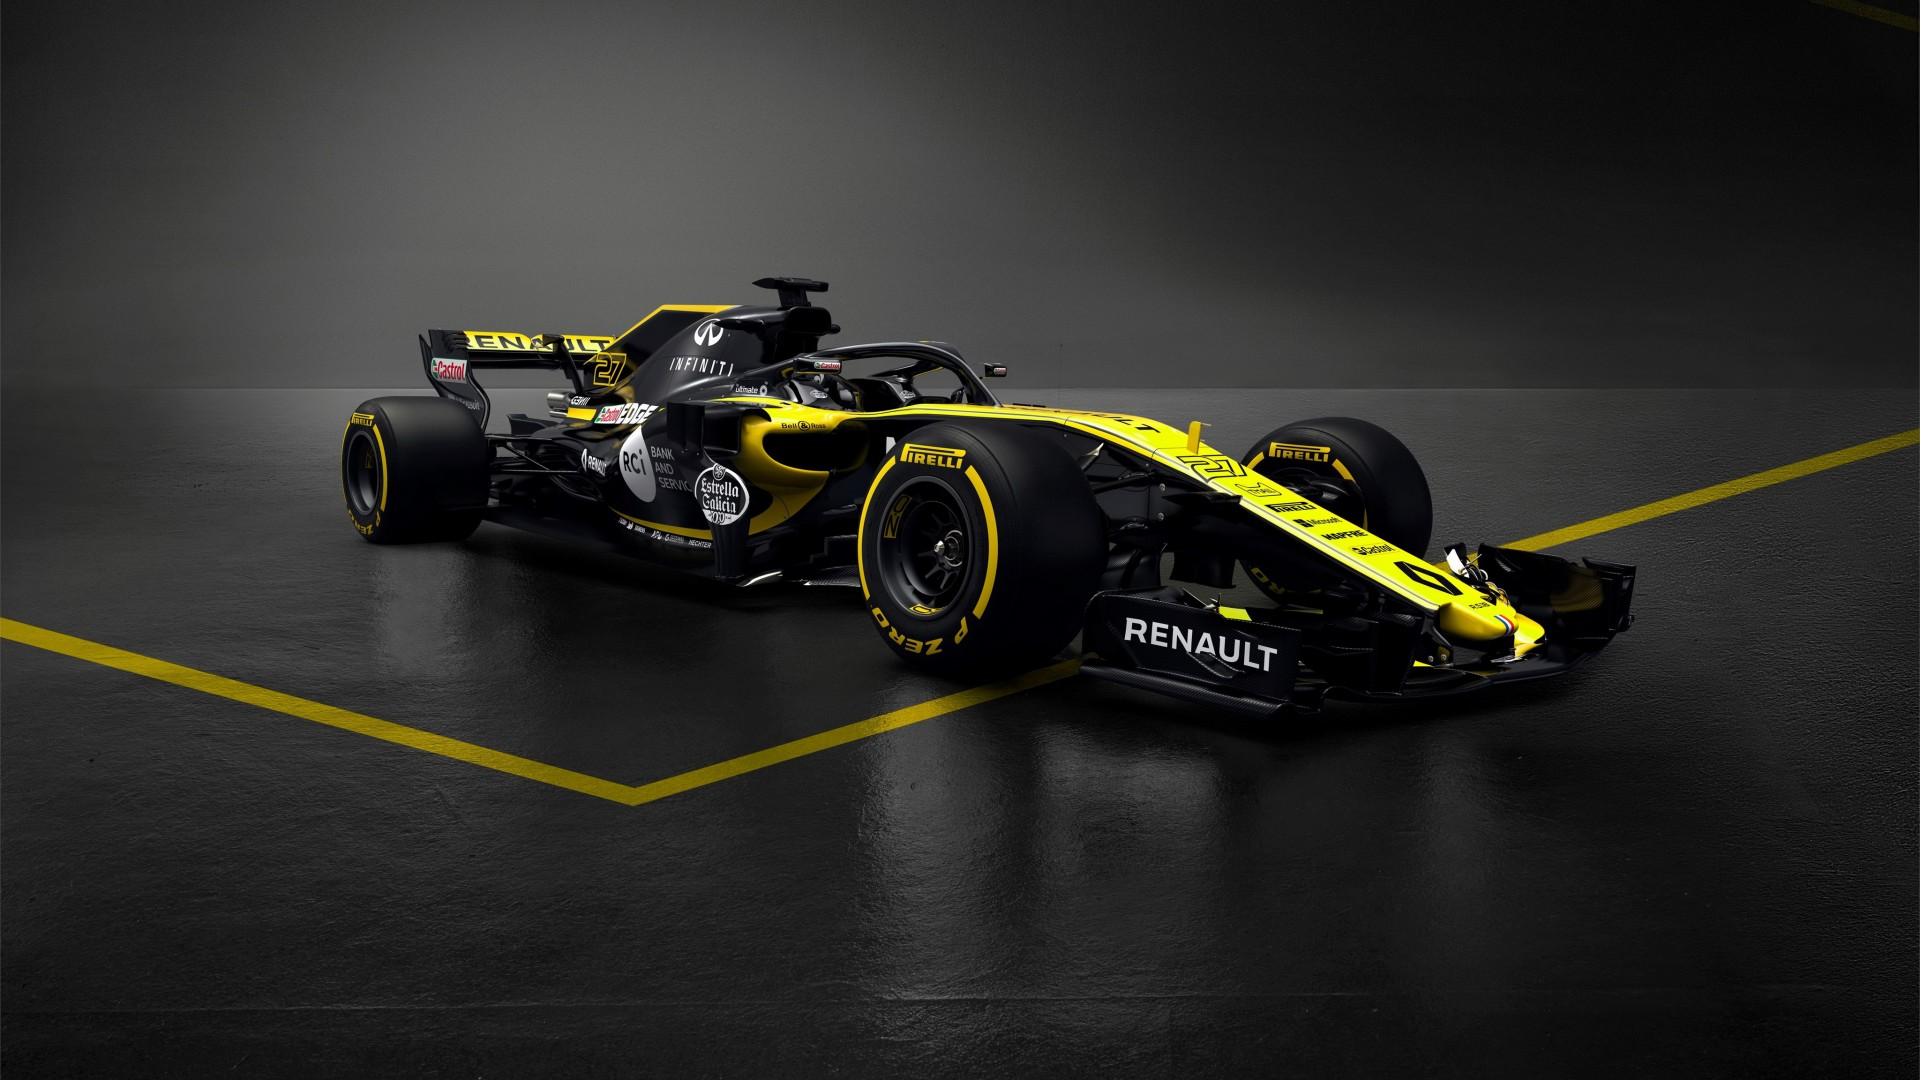 Formula 1 Hd: 2018 Renault RS18 F1 Formula 1 Car 4K 2 Wallpaper